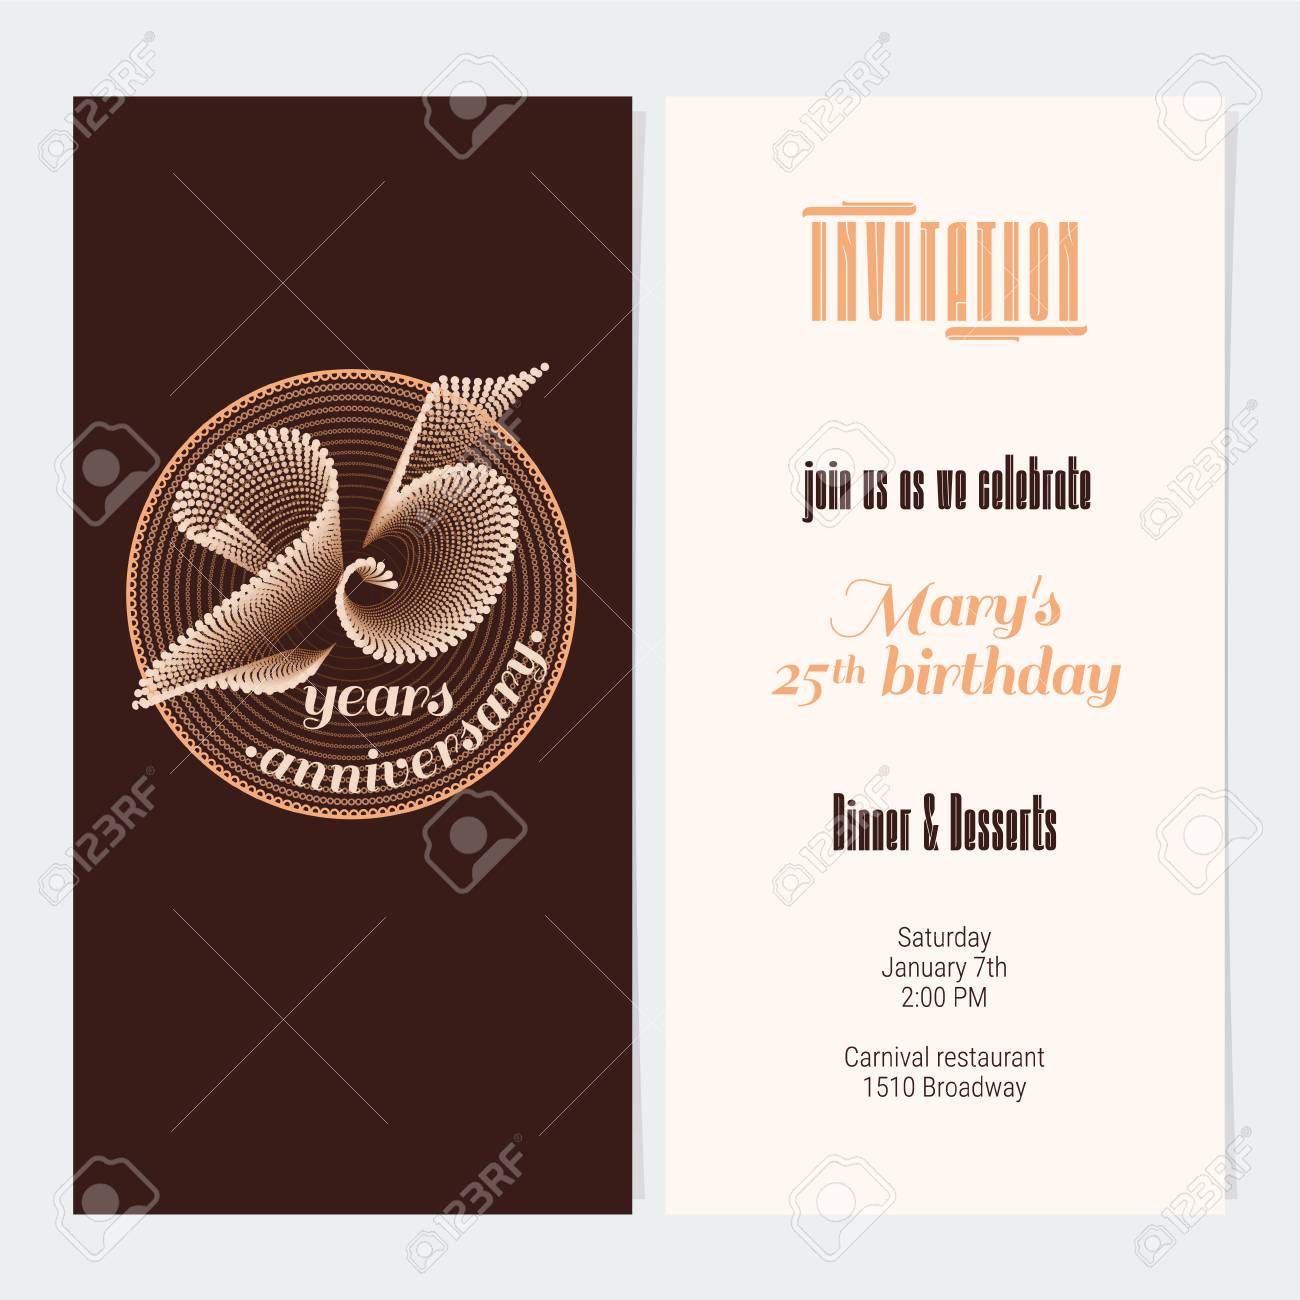 25 years anniversary invitation vector illustration graphic 25 years anniversary invitation vector illustration graphic design element for 25th birthday card party stopboris Image collections